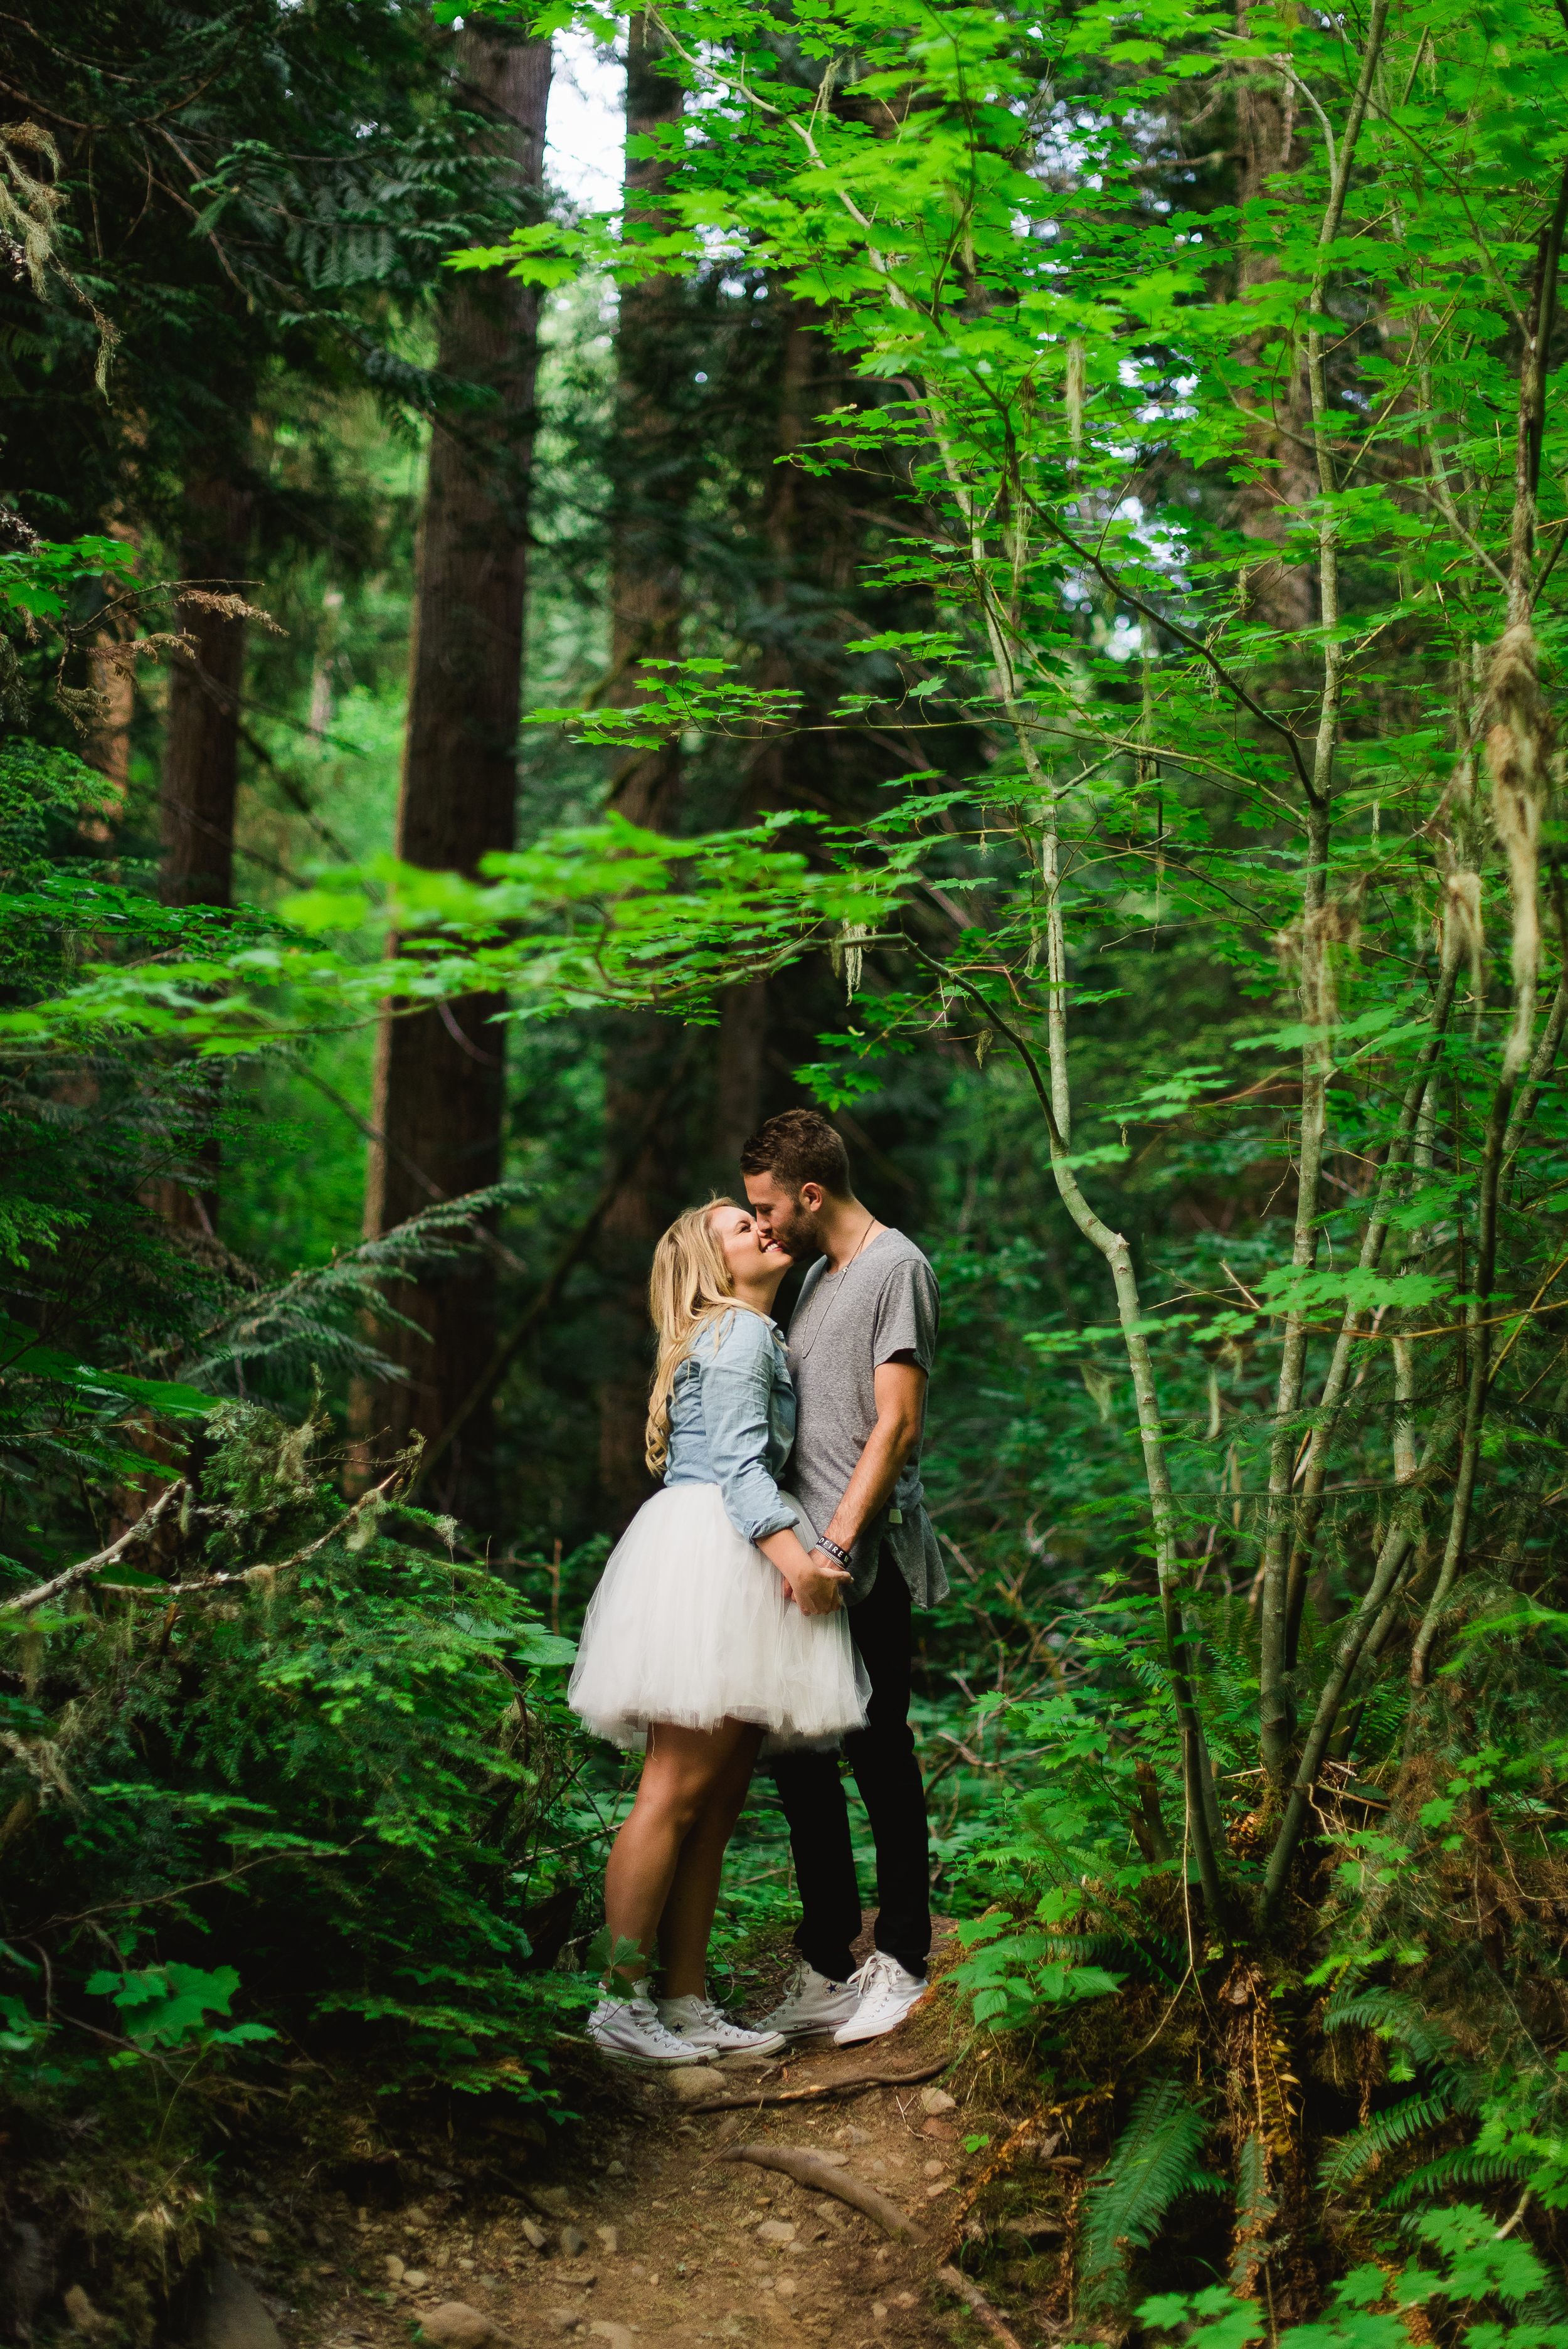 Haley and Jonathan Engagement Session 2015-4630.jpg